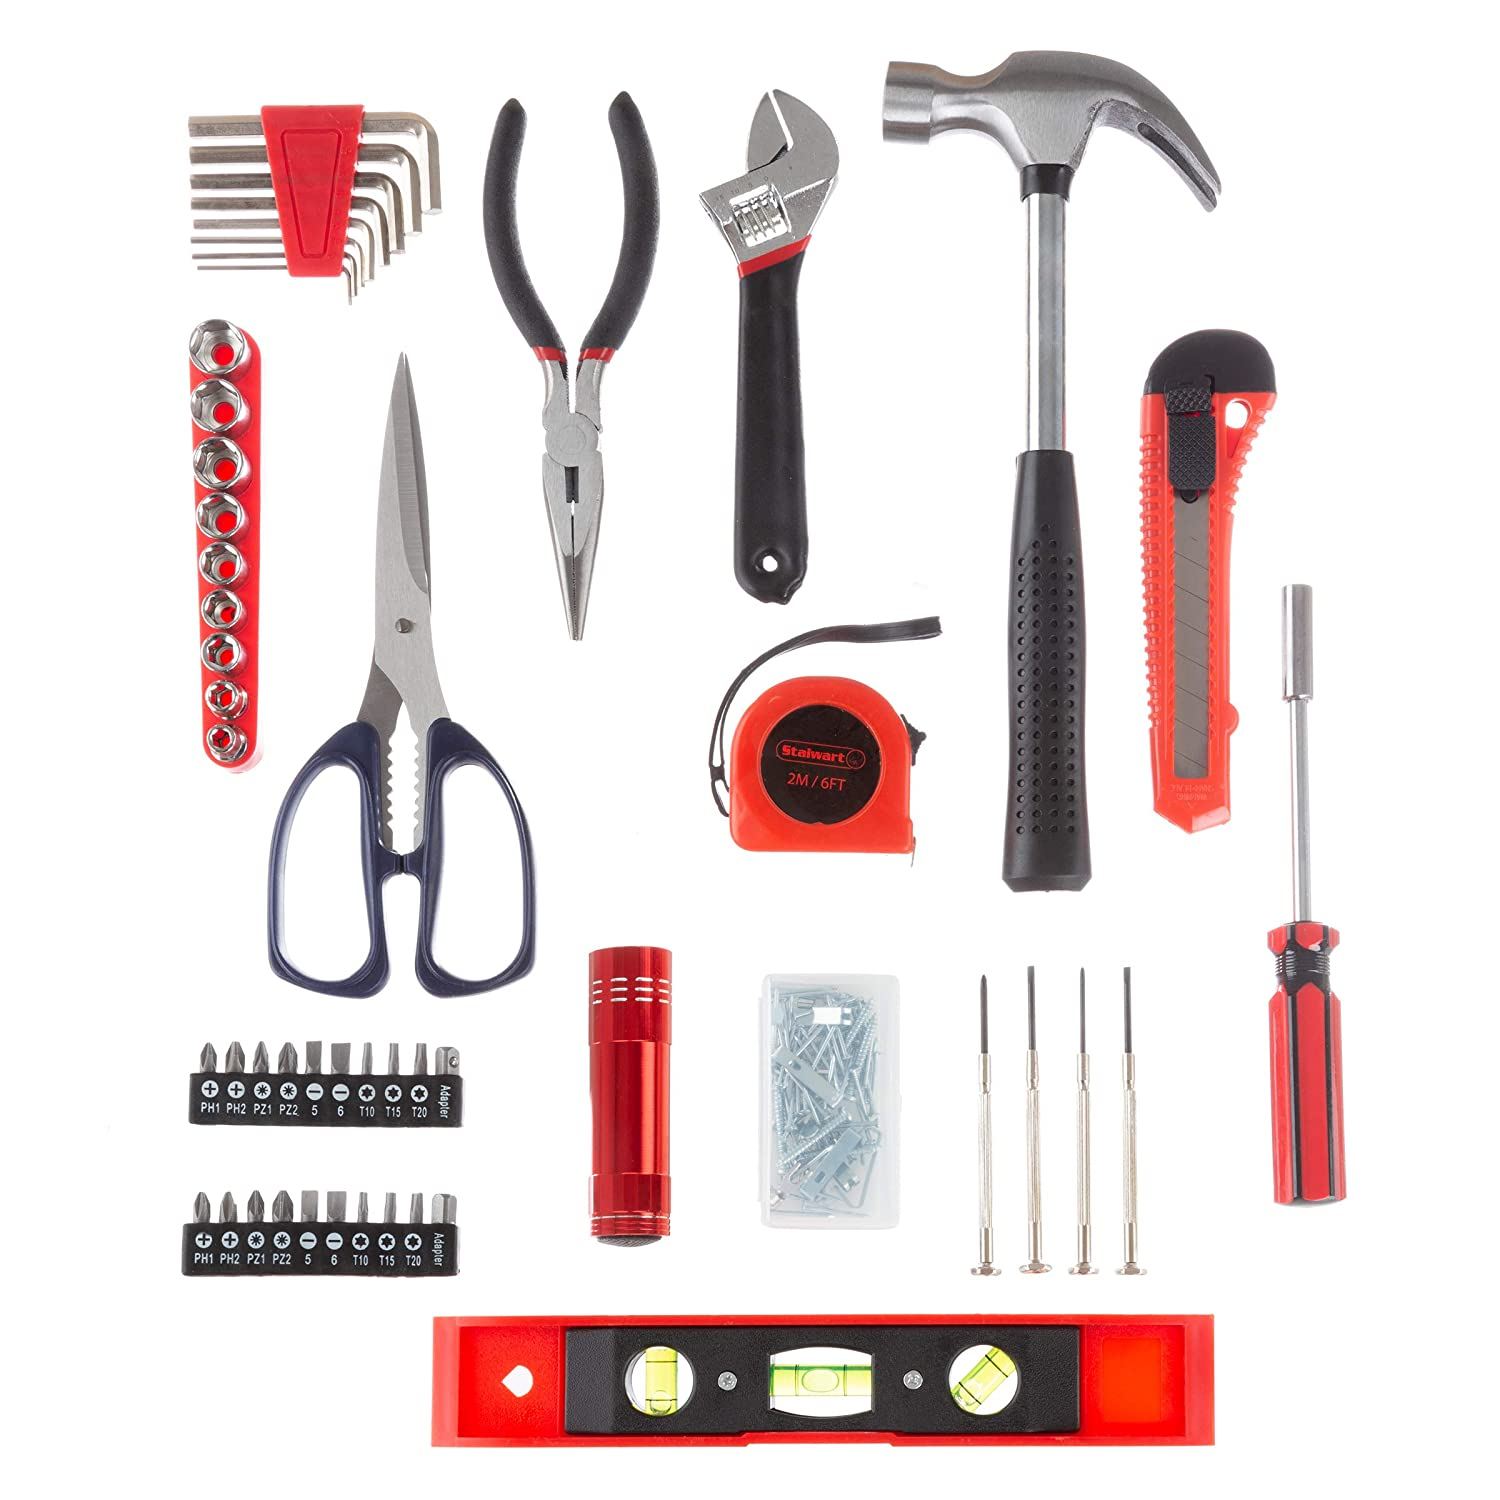 Stalwart Tool Kit Dorm Homeowners Trademark 75-HT5004 Essential Steel Hand Tool and Basic Repair Set for Apartments 131 Heat-Treated Pieces with Carrying Case